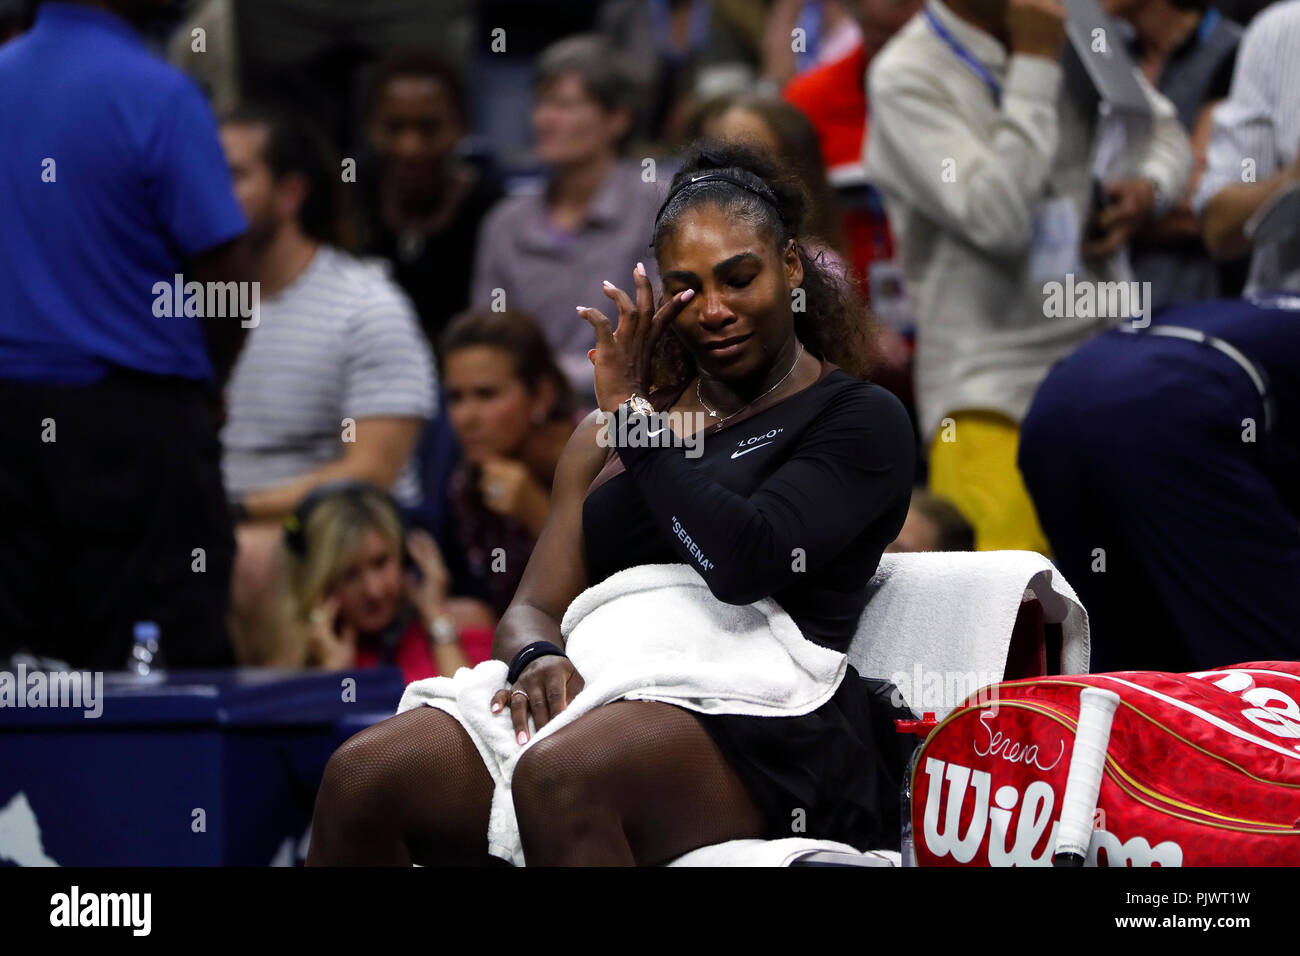 New York, USA. 8th September 2018.  US Open Tennis:   Serena Williams wipes a tear moments after her loss to Naomi Osaka of Japan in the US Open women's final.   Williams was penalized a game at 4-3 in the final set, which added controversy to the match. Credit: Adam Stoltman/Alamy Live News - Stock Image